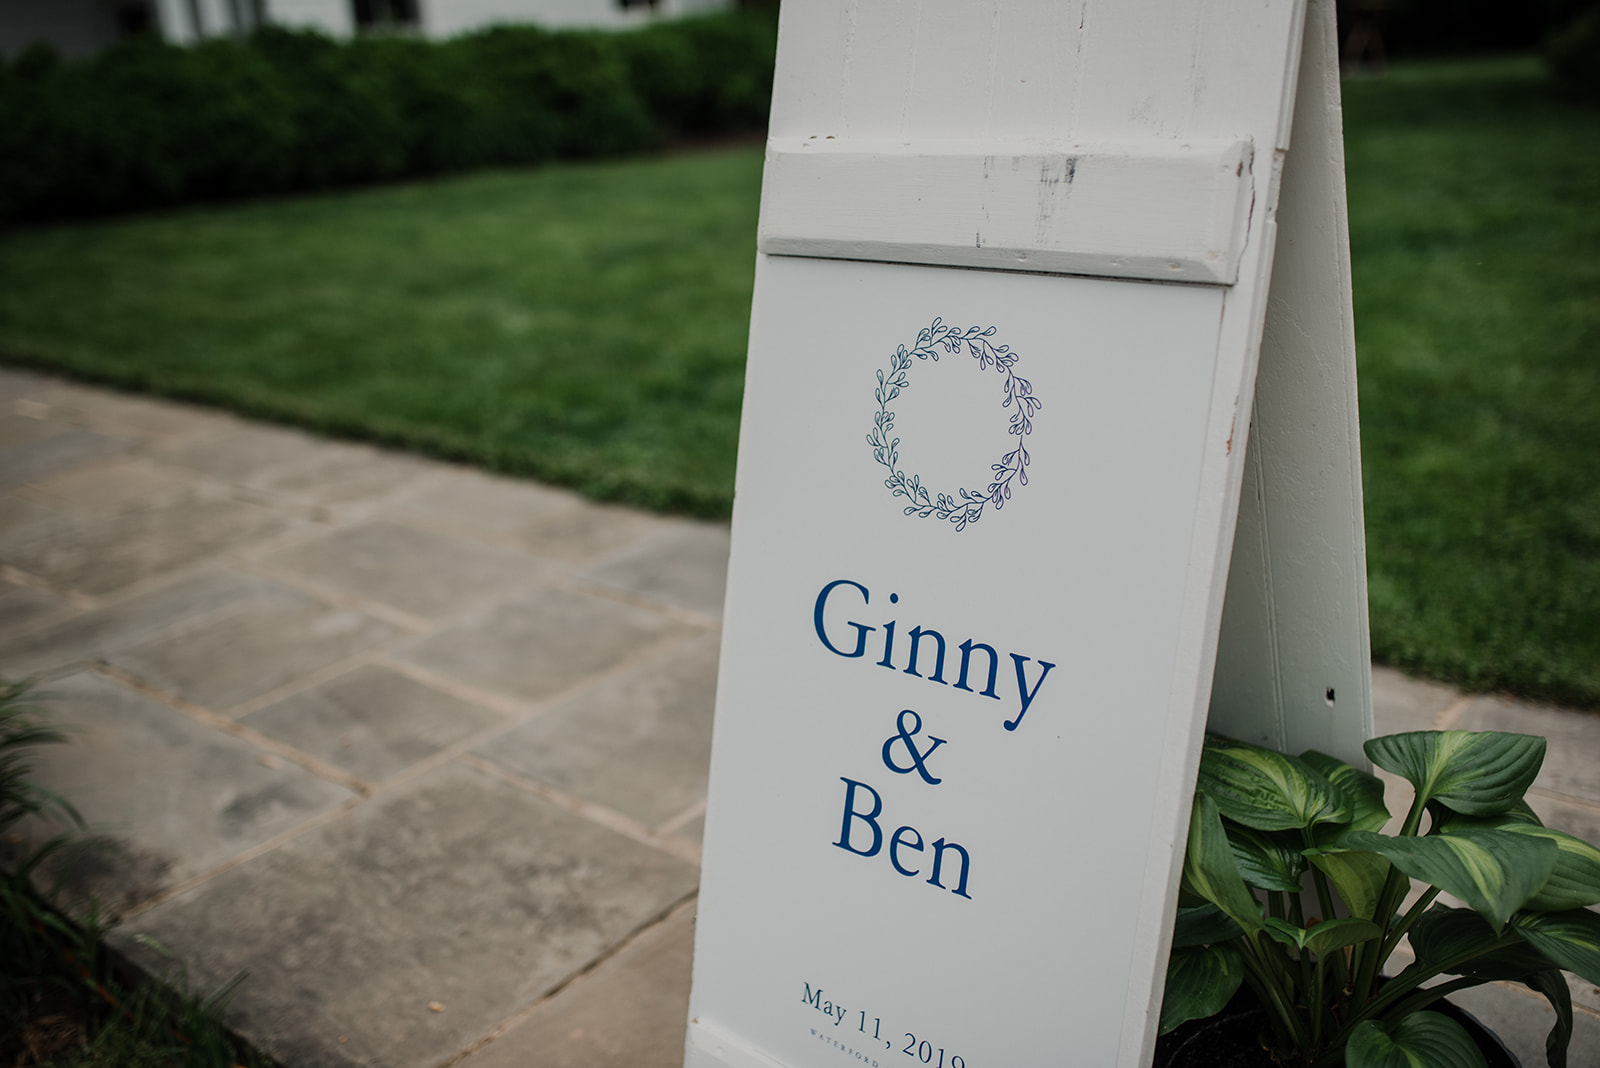 The bride and groom's names appear on a sign outside of their outdoor wedding ceremony at Blue Hill Farm in Waterford, VA.